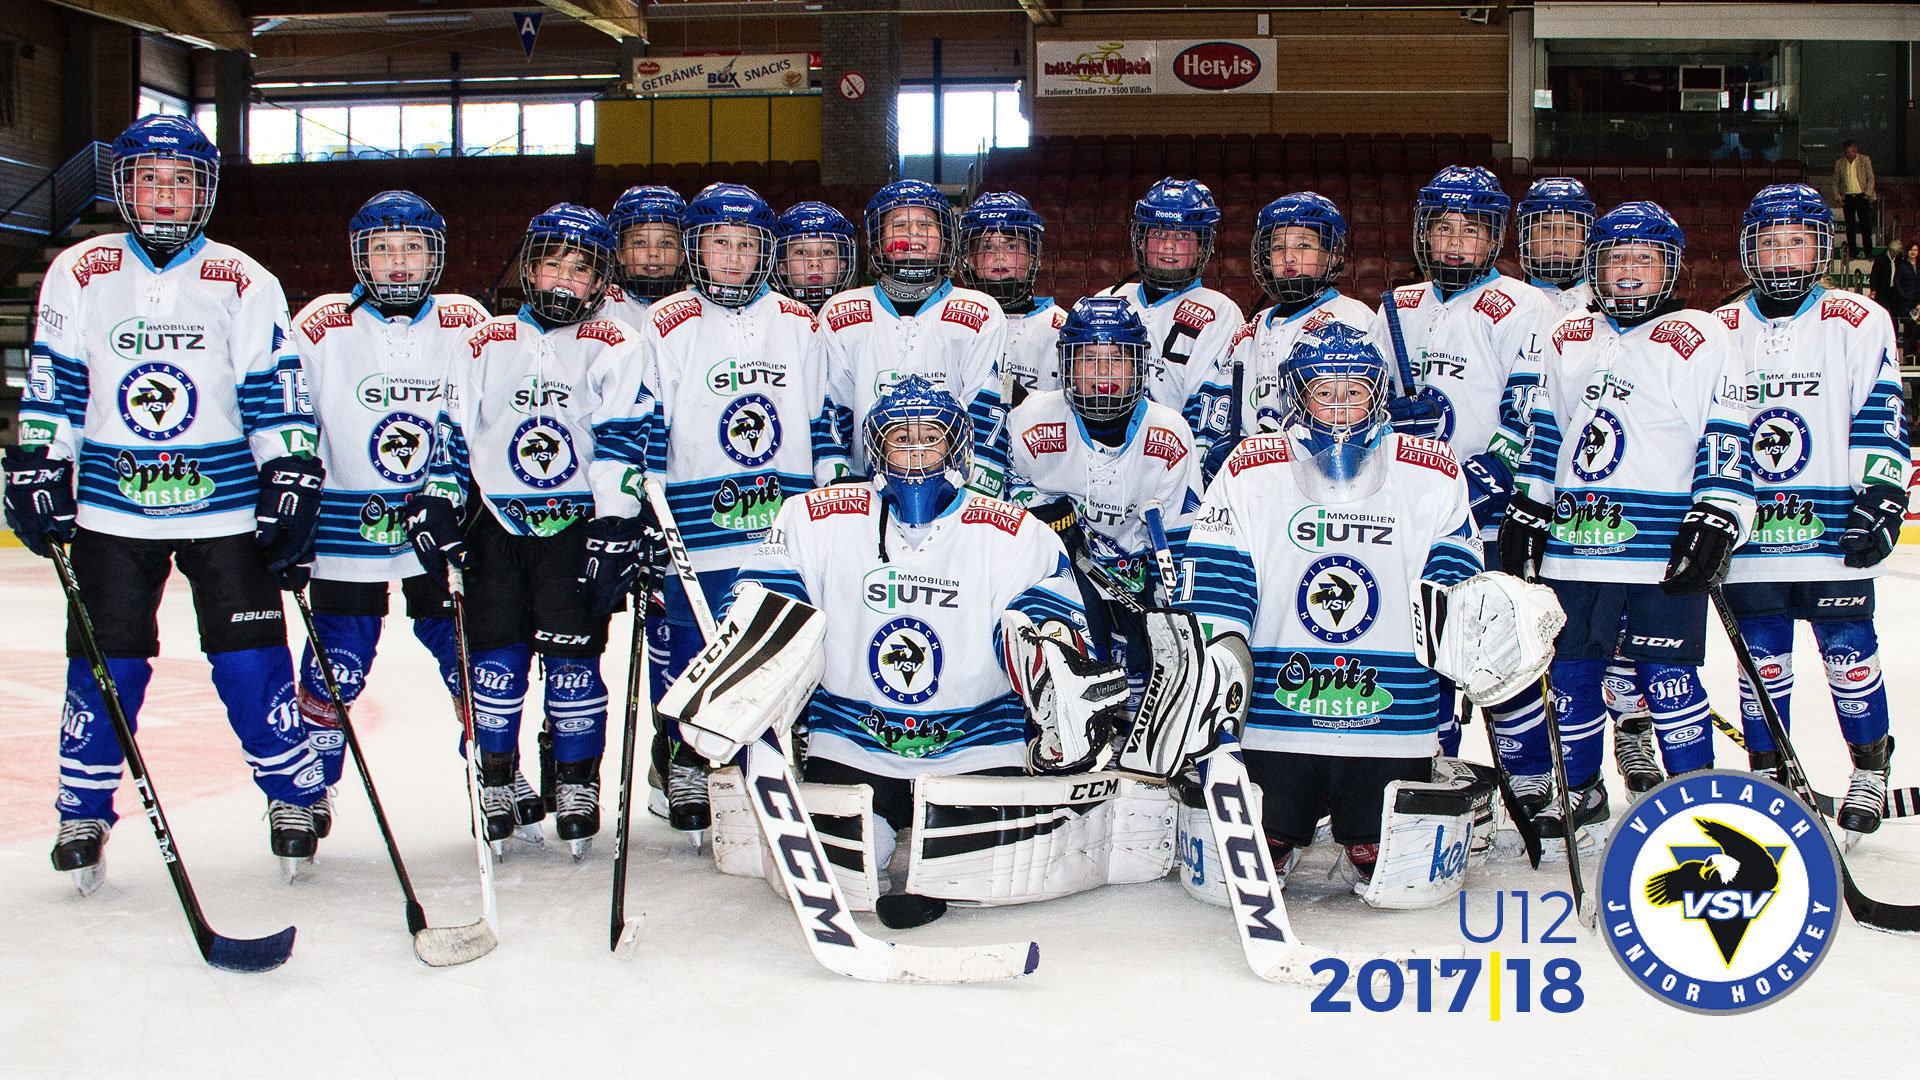 Photo of U12 Finalturnier 2017/18